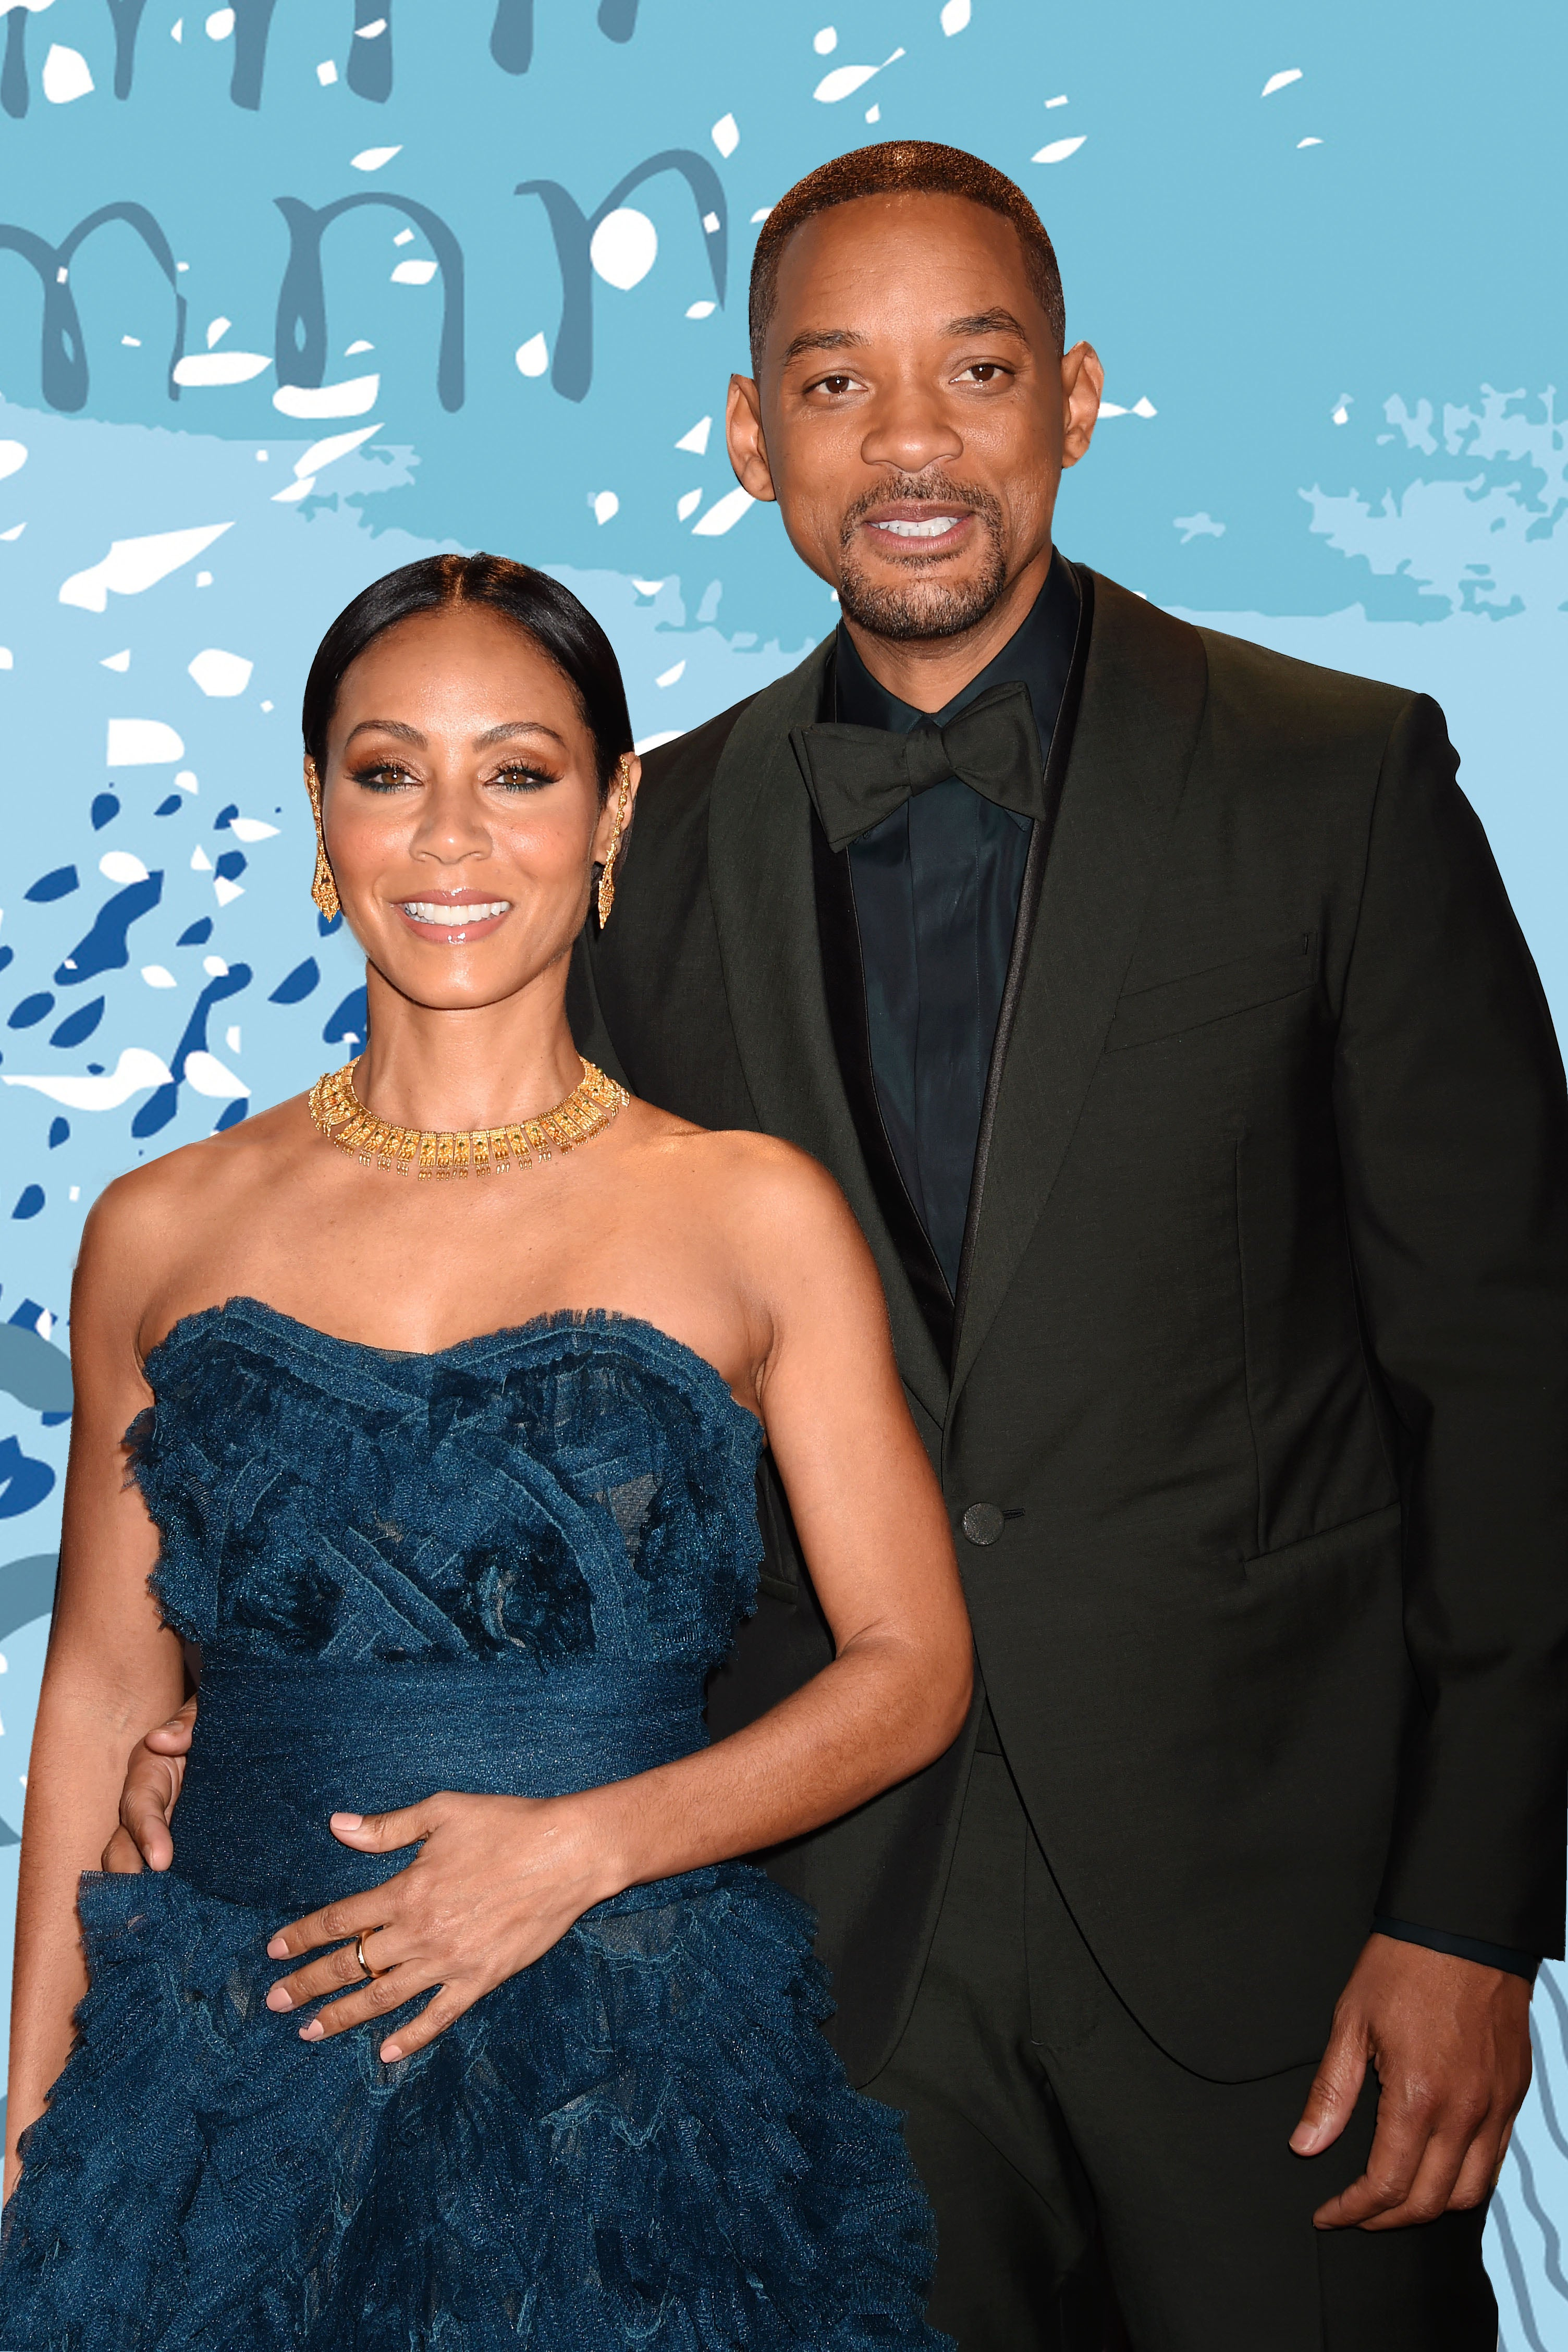 Jada Pinkett Smith Shows Off Her Dance Moves For Hubby Will Smith and Of Course He Can't Get Enough